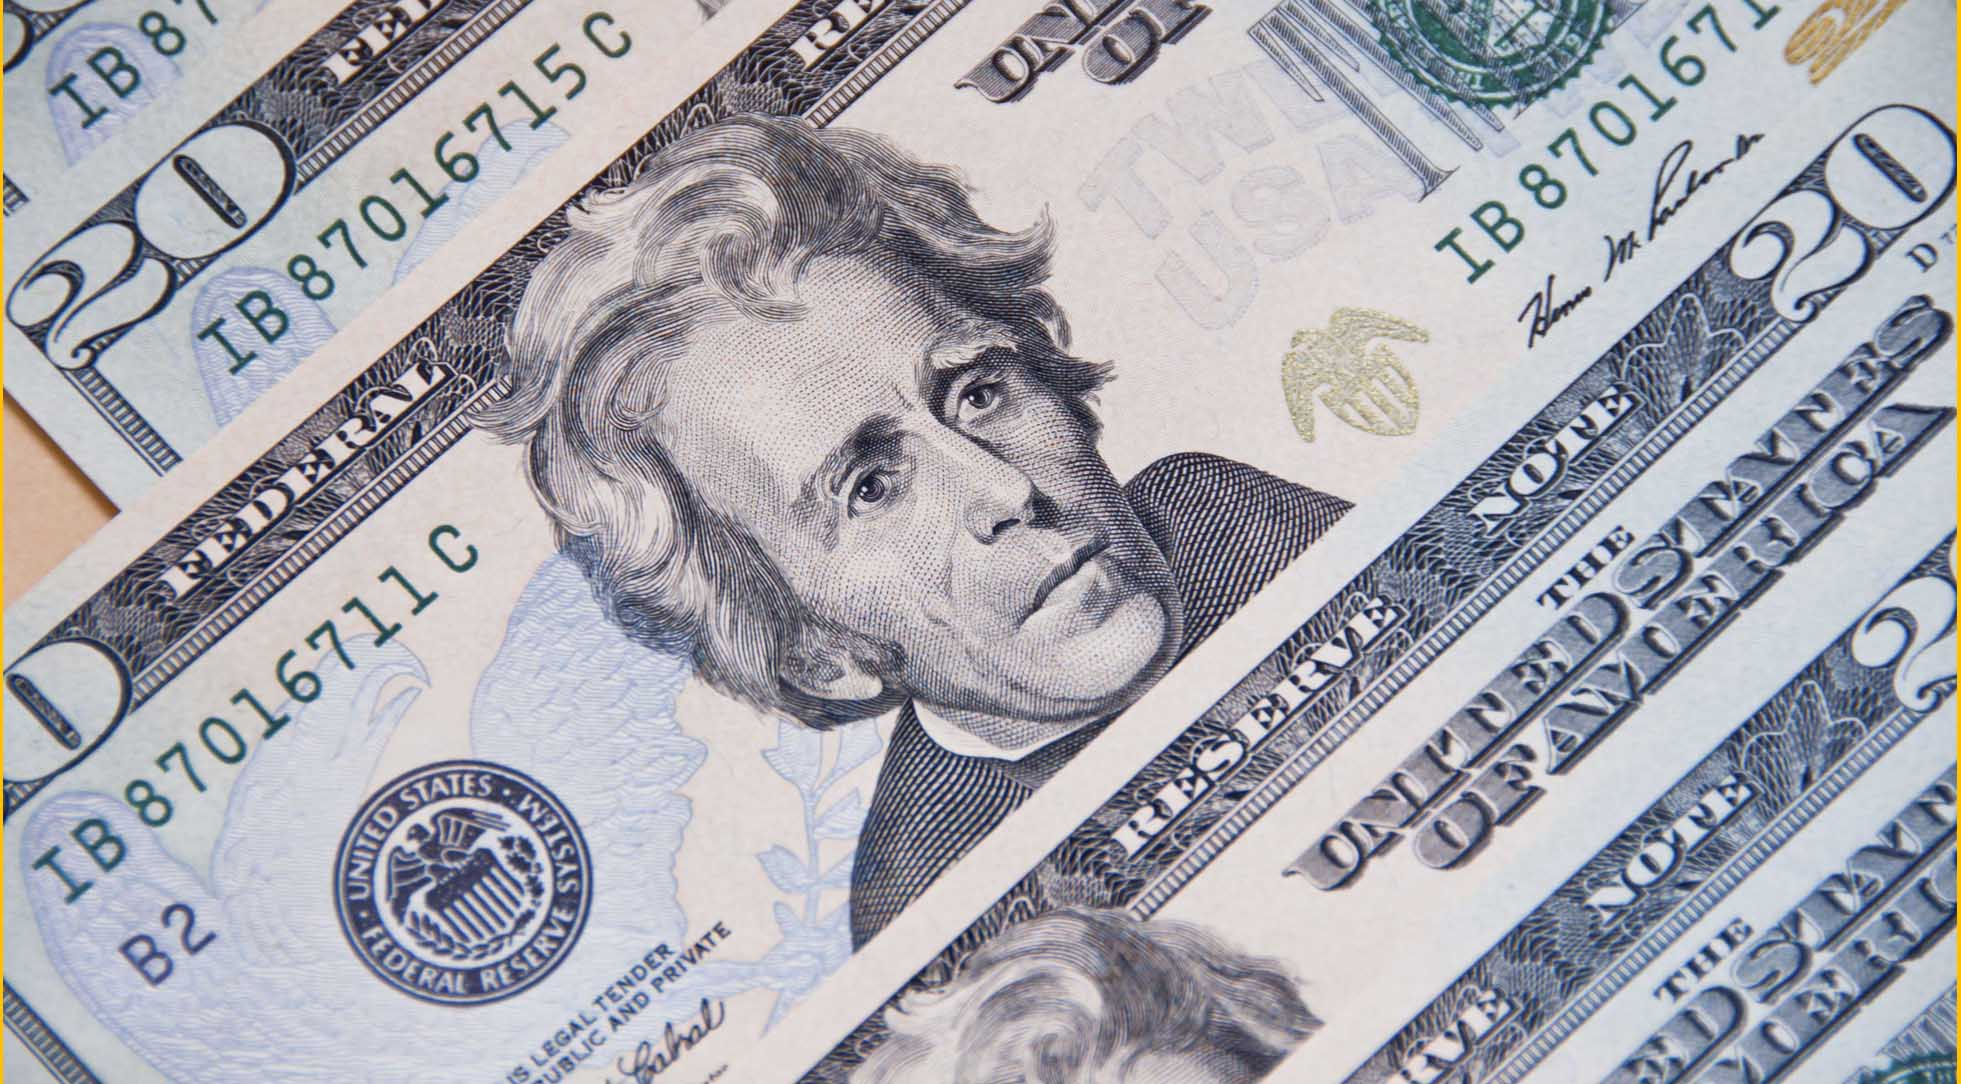 True Money Show 060216: Featuring Franklin Sanders on The Peril of Paper Money